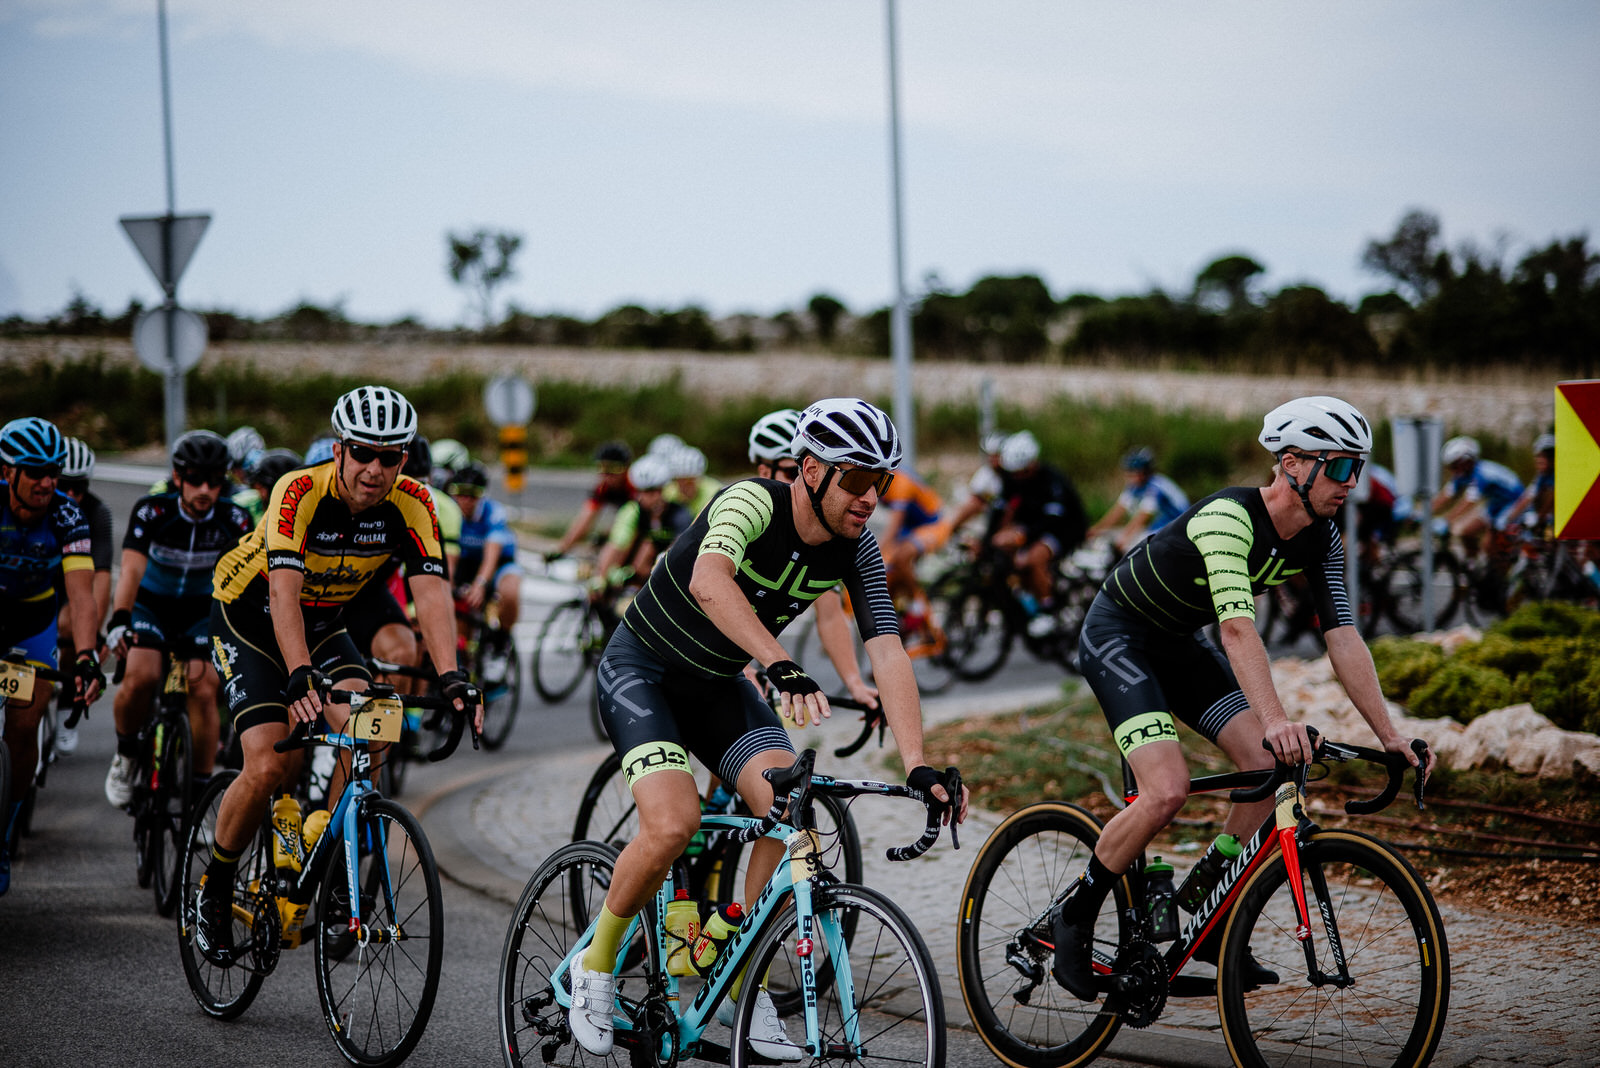 likaclub_Granfondo-Pag-–-Cycling-on-the-Moon_2019-5